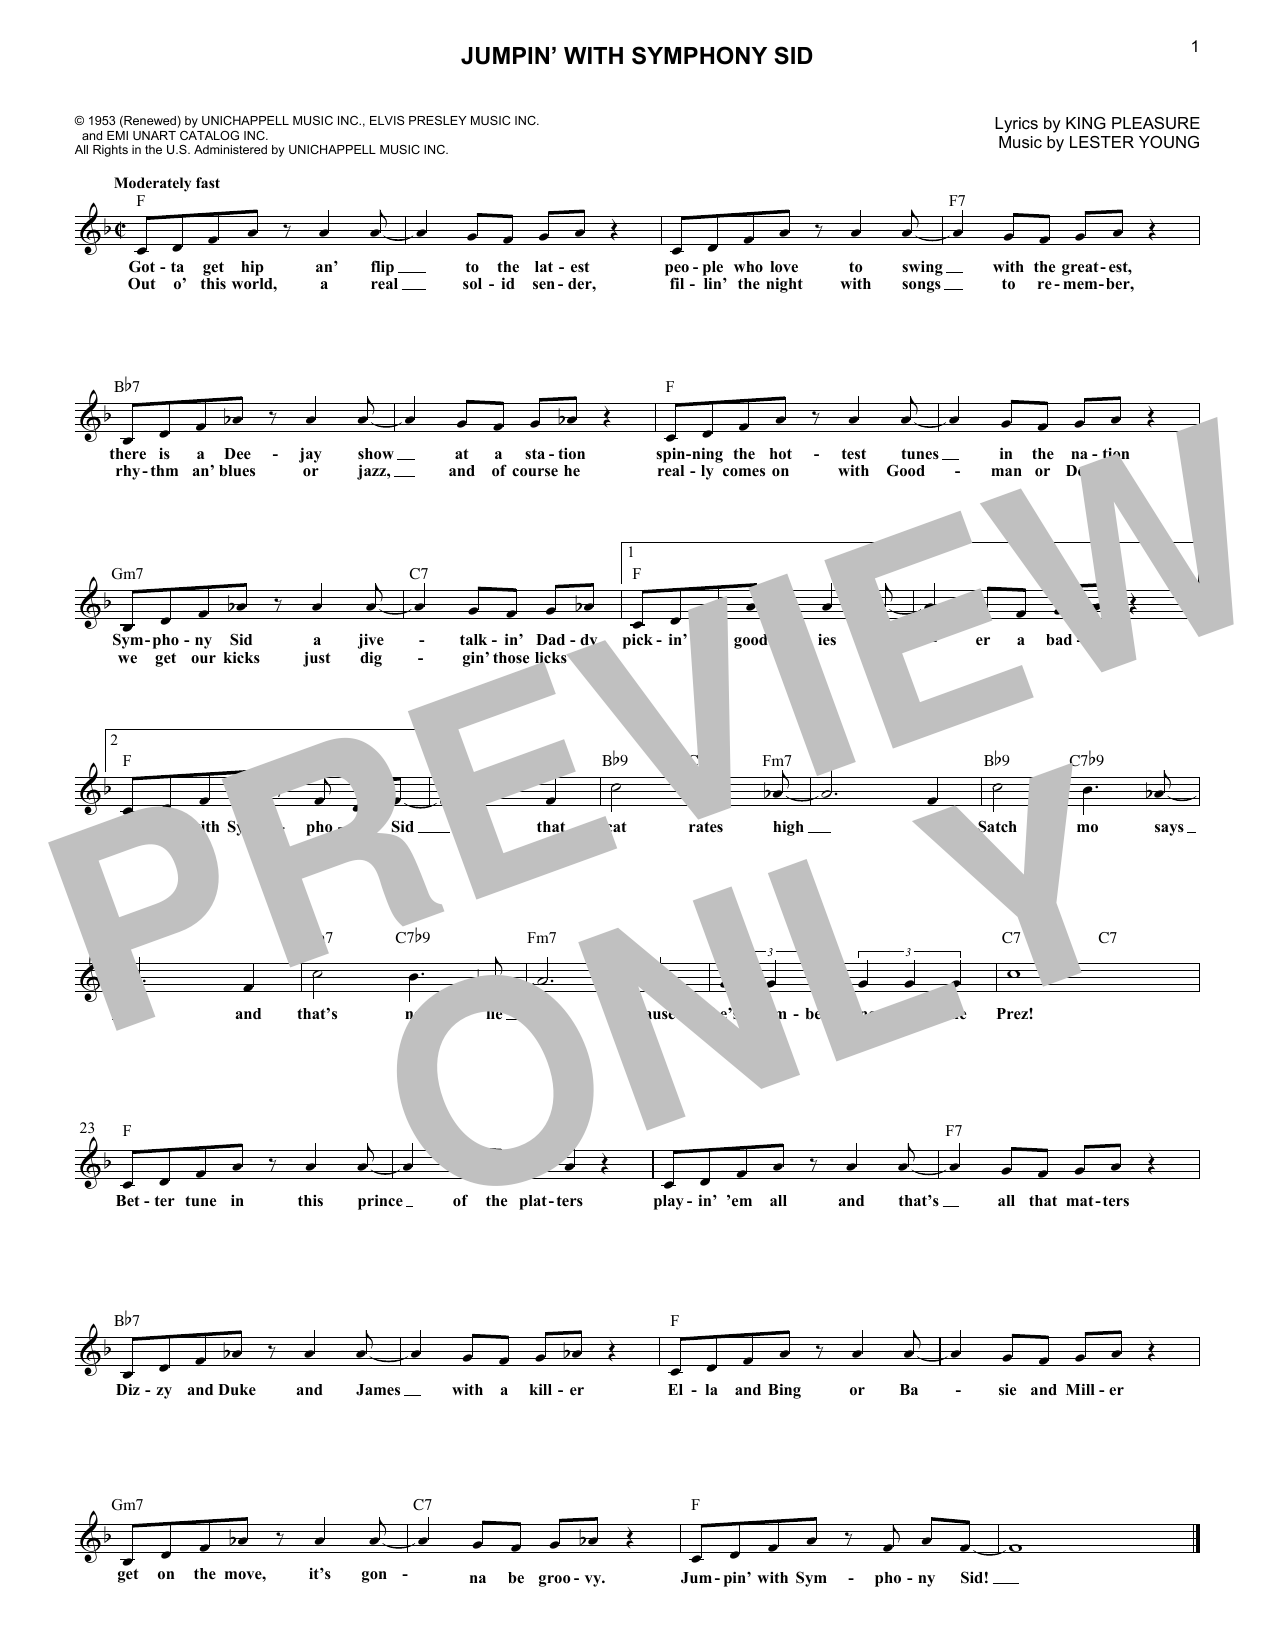 Jumpin' With Symphony Sid Sheet Music